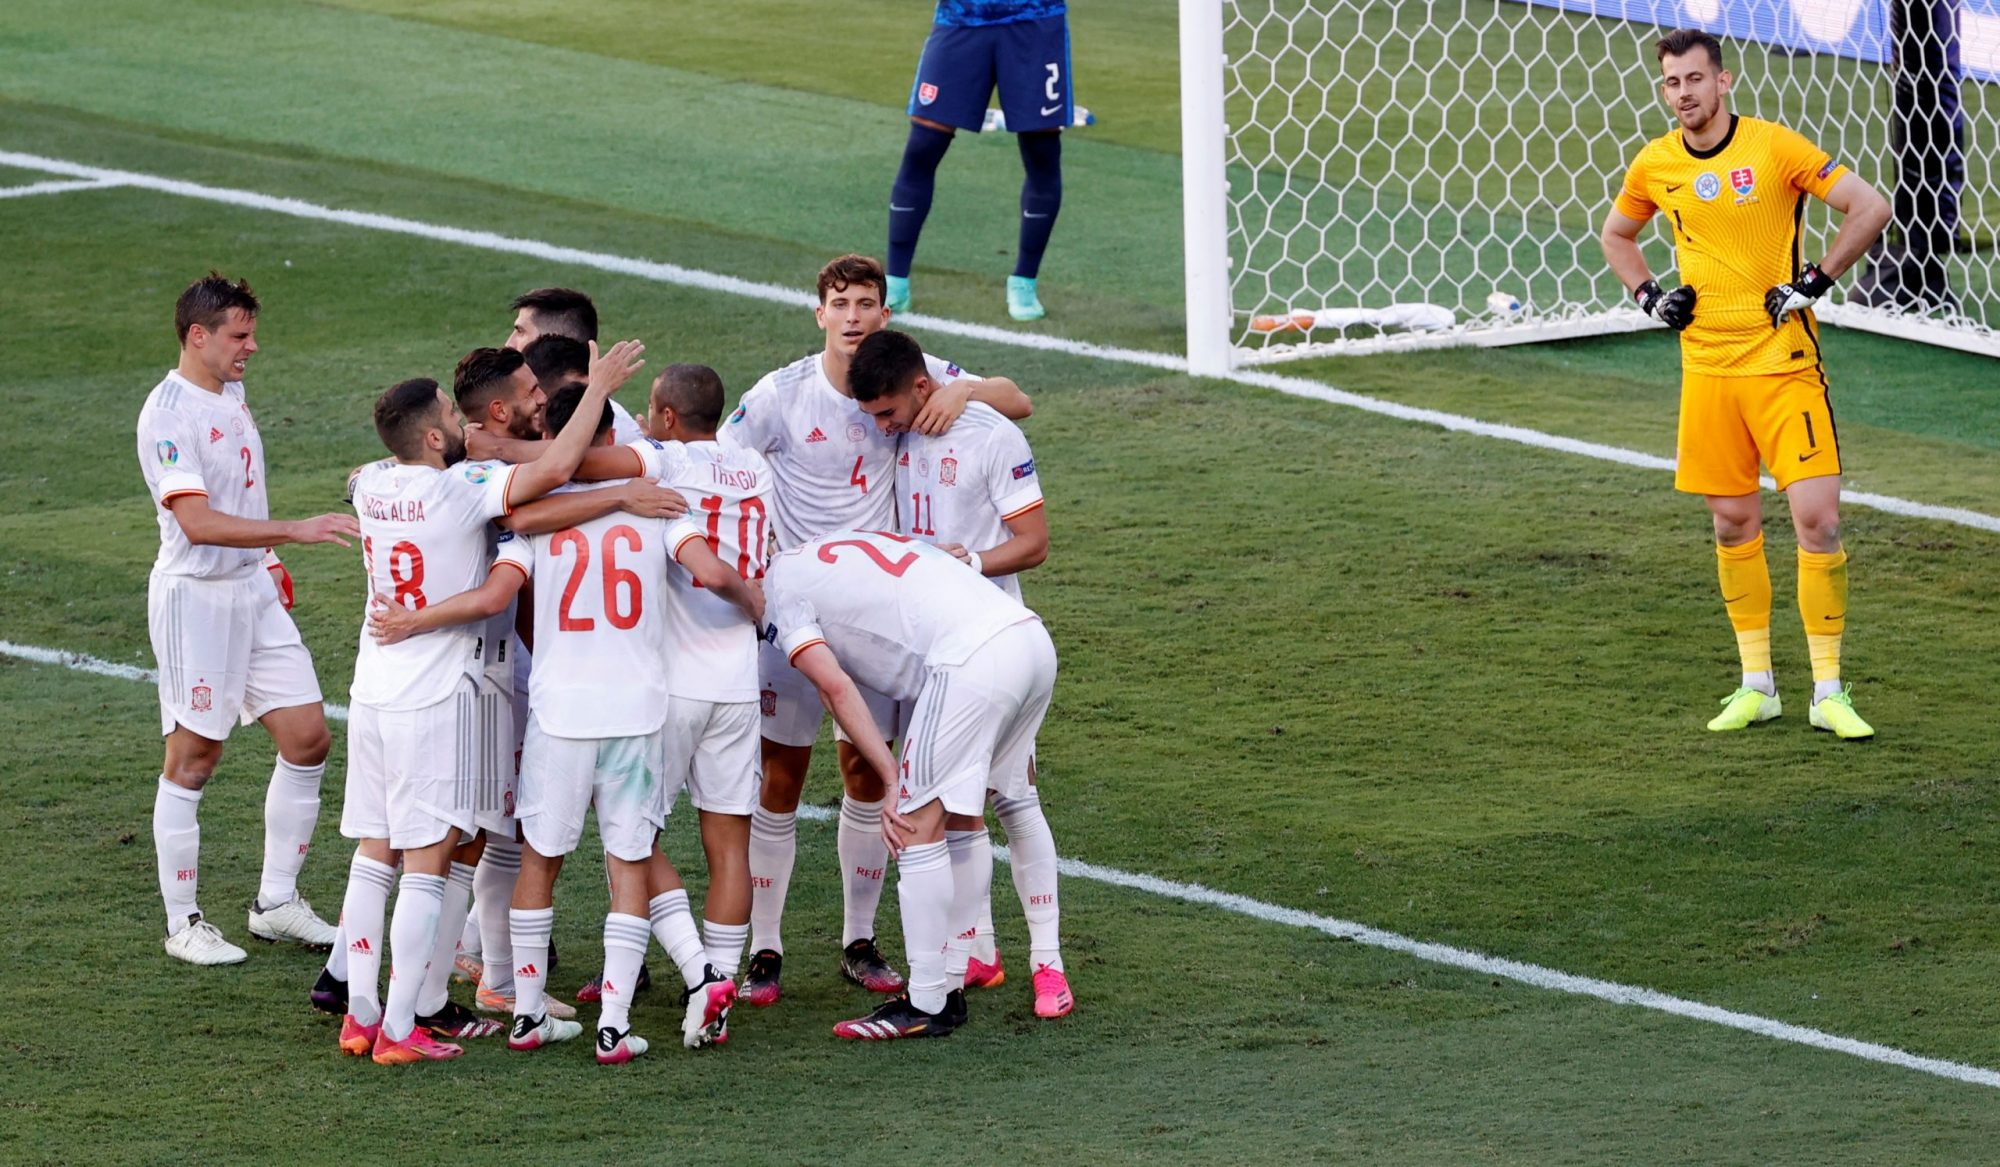 Euro 2020: Spain Beat Slovakia to Join Sweden in Round of 16